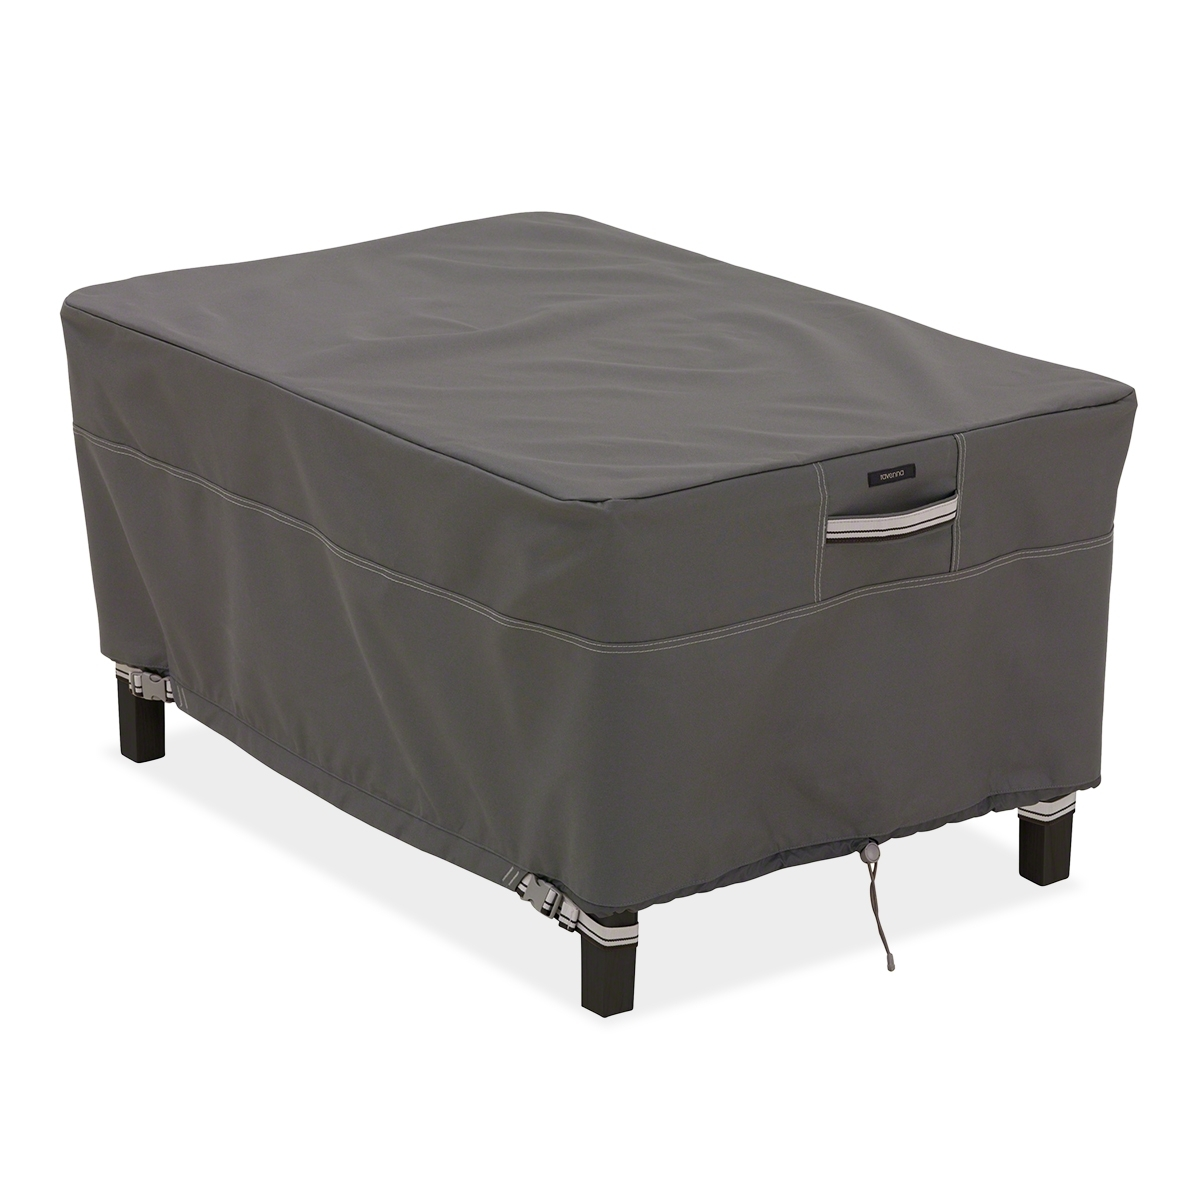 Amazing Side Table Cover Casbah Coffee Review C H Cloth With Fabric throughout Casbah Coffee-Side Tables (Image 3 of 30)